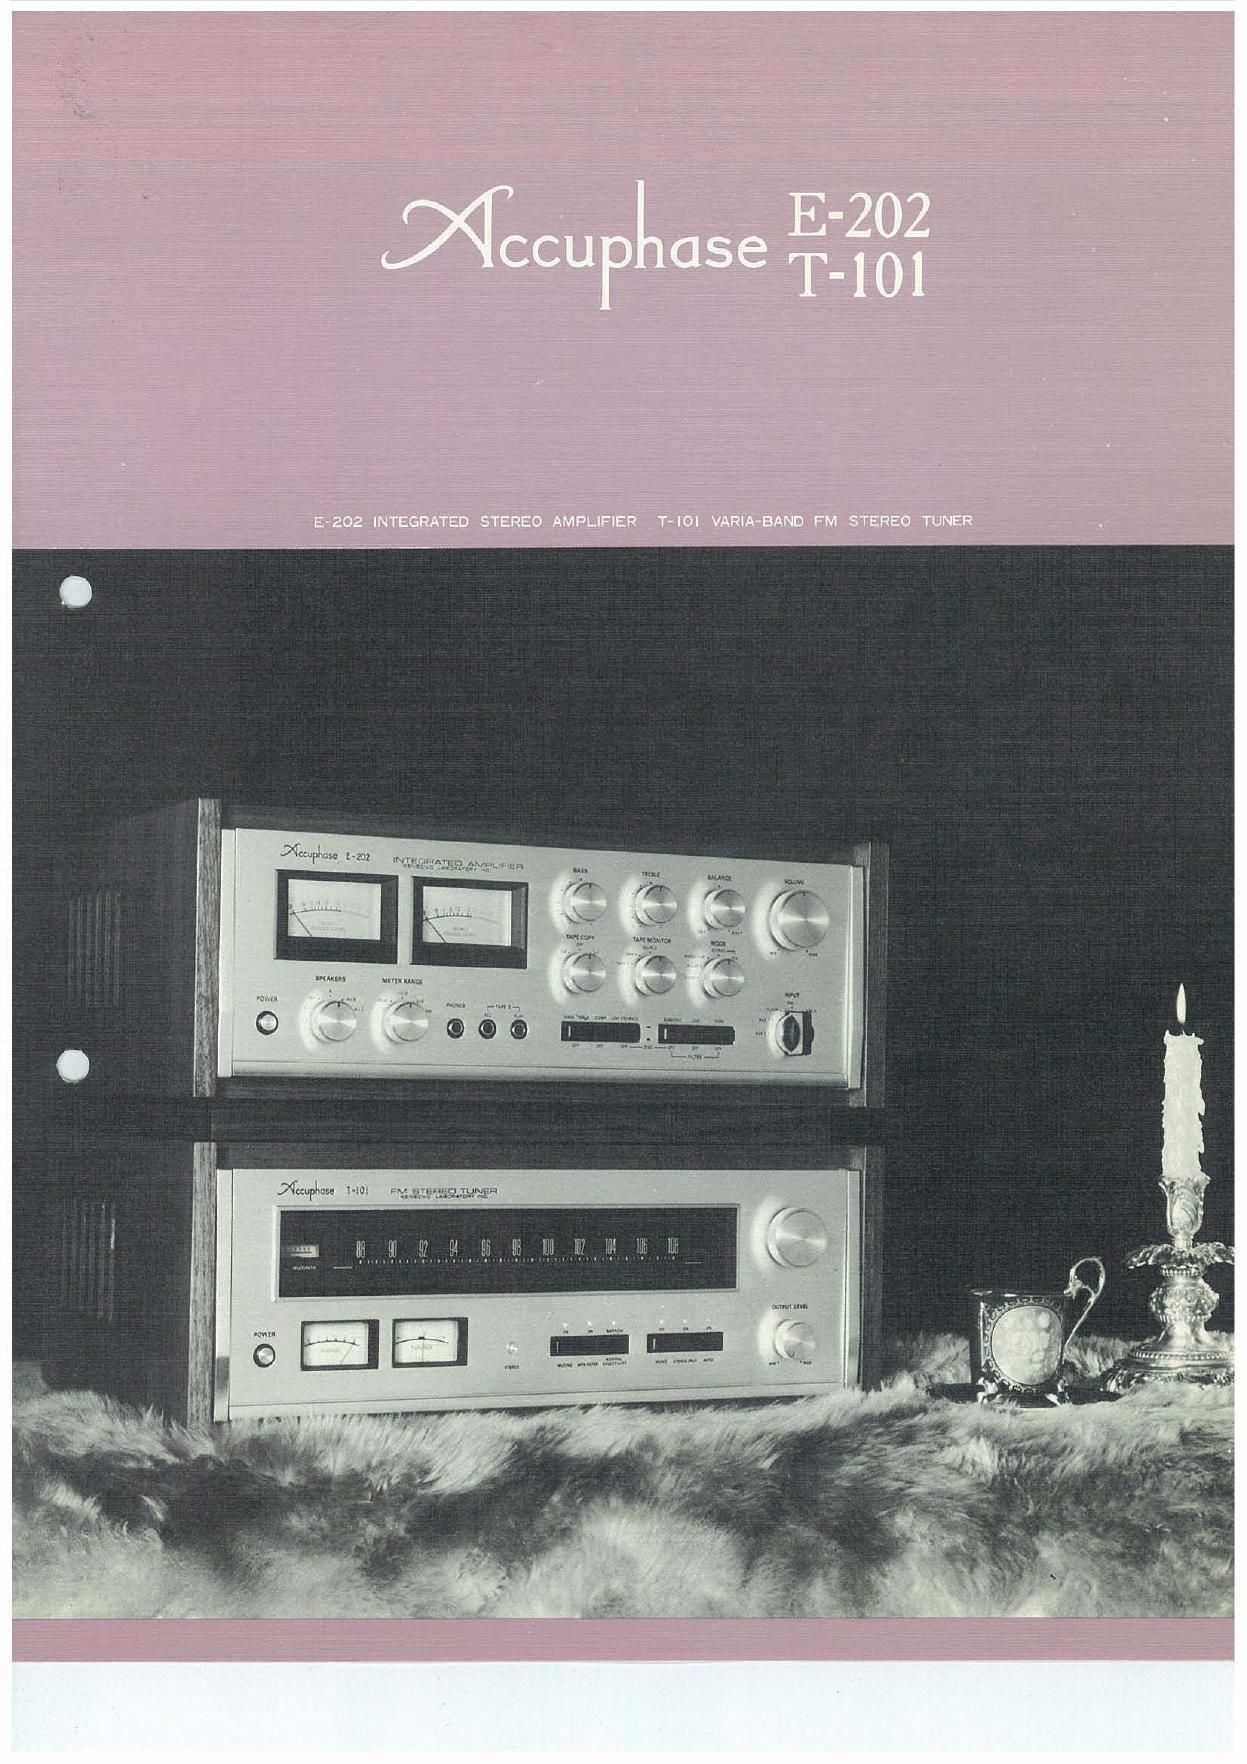 Accuphase E 202 Brochure